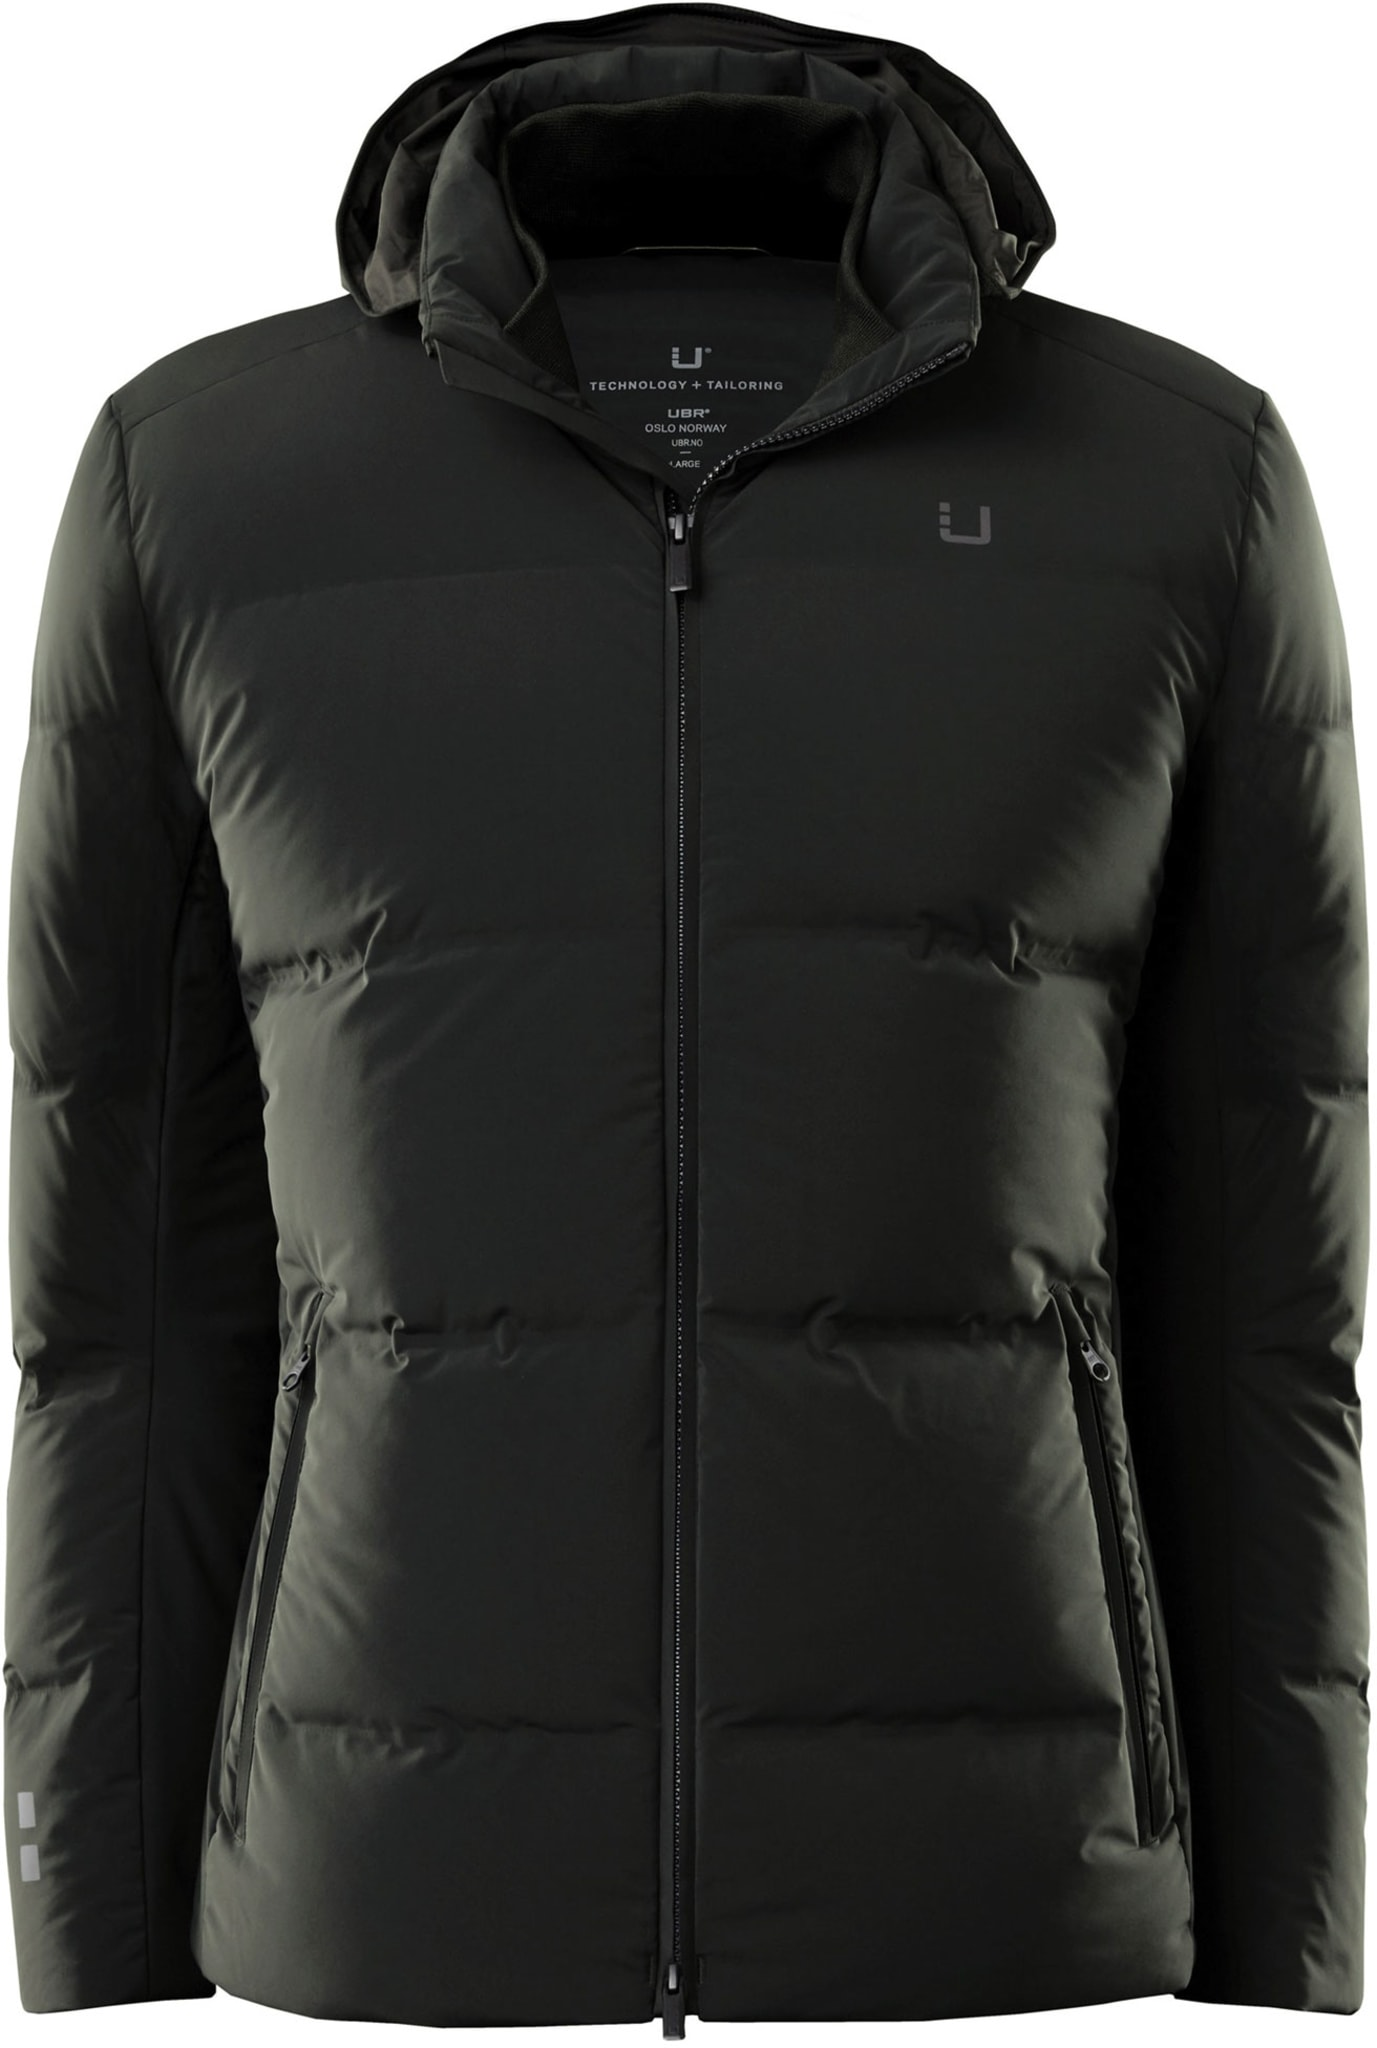 Bolt Down Jacket Ms